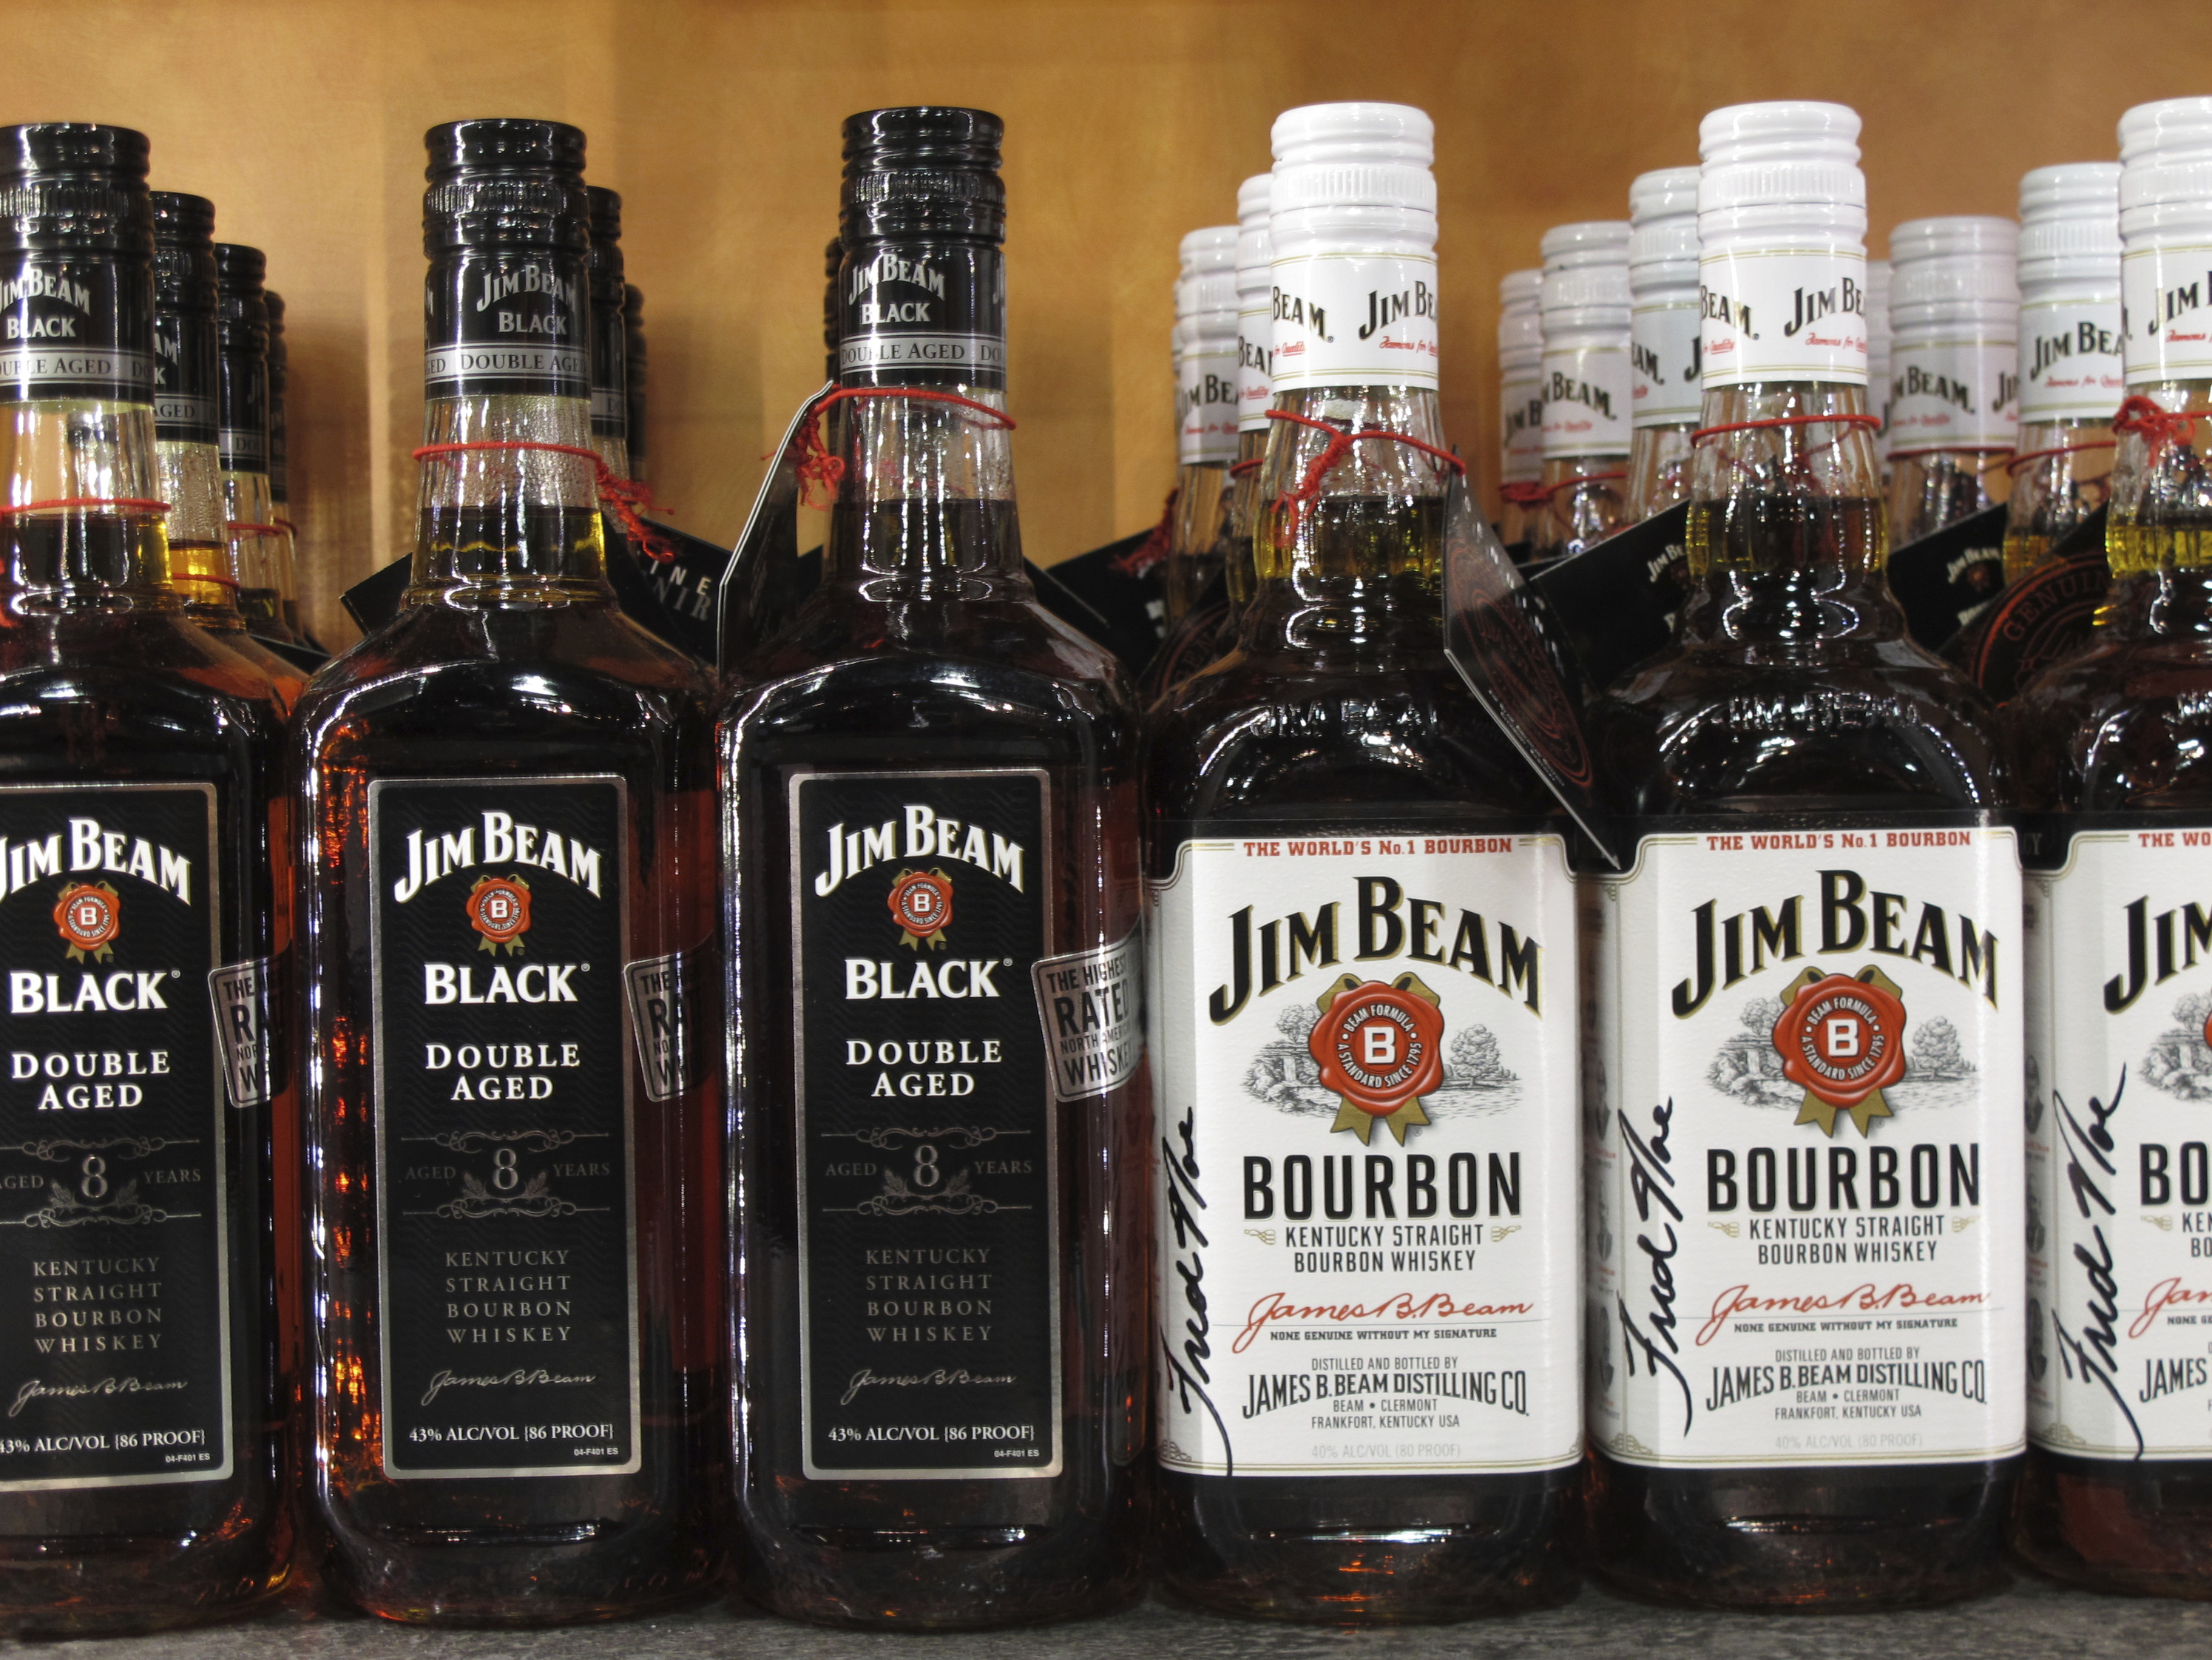 Jim Beam bottles line the counter at the Jim Beam visitors' center at Clermont, Ky. Kentucky's bourbon industry is showing that it's increasingly bullish on its future. The industry has reached new production heights despite the COVID-19 pandemic and trade disputes in key European markets.